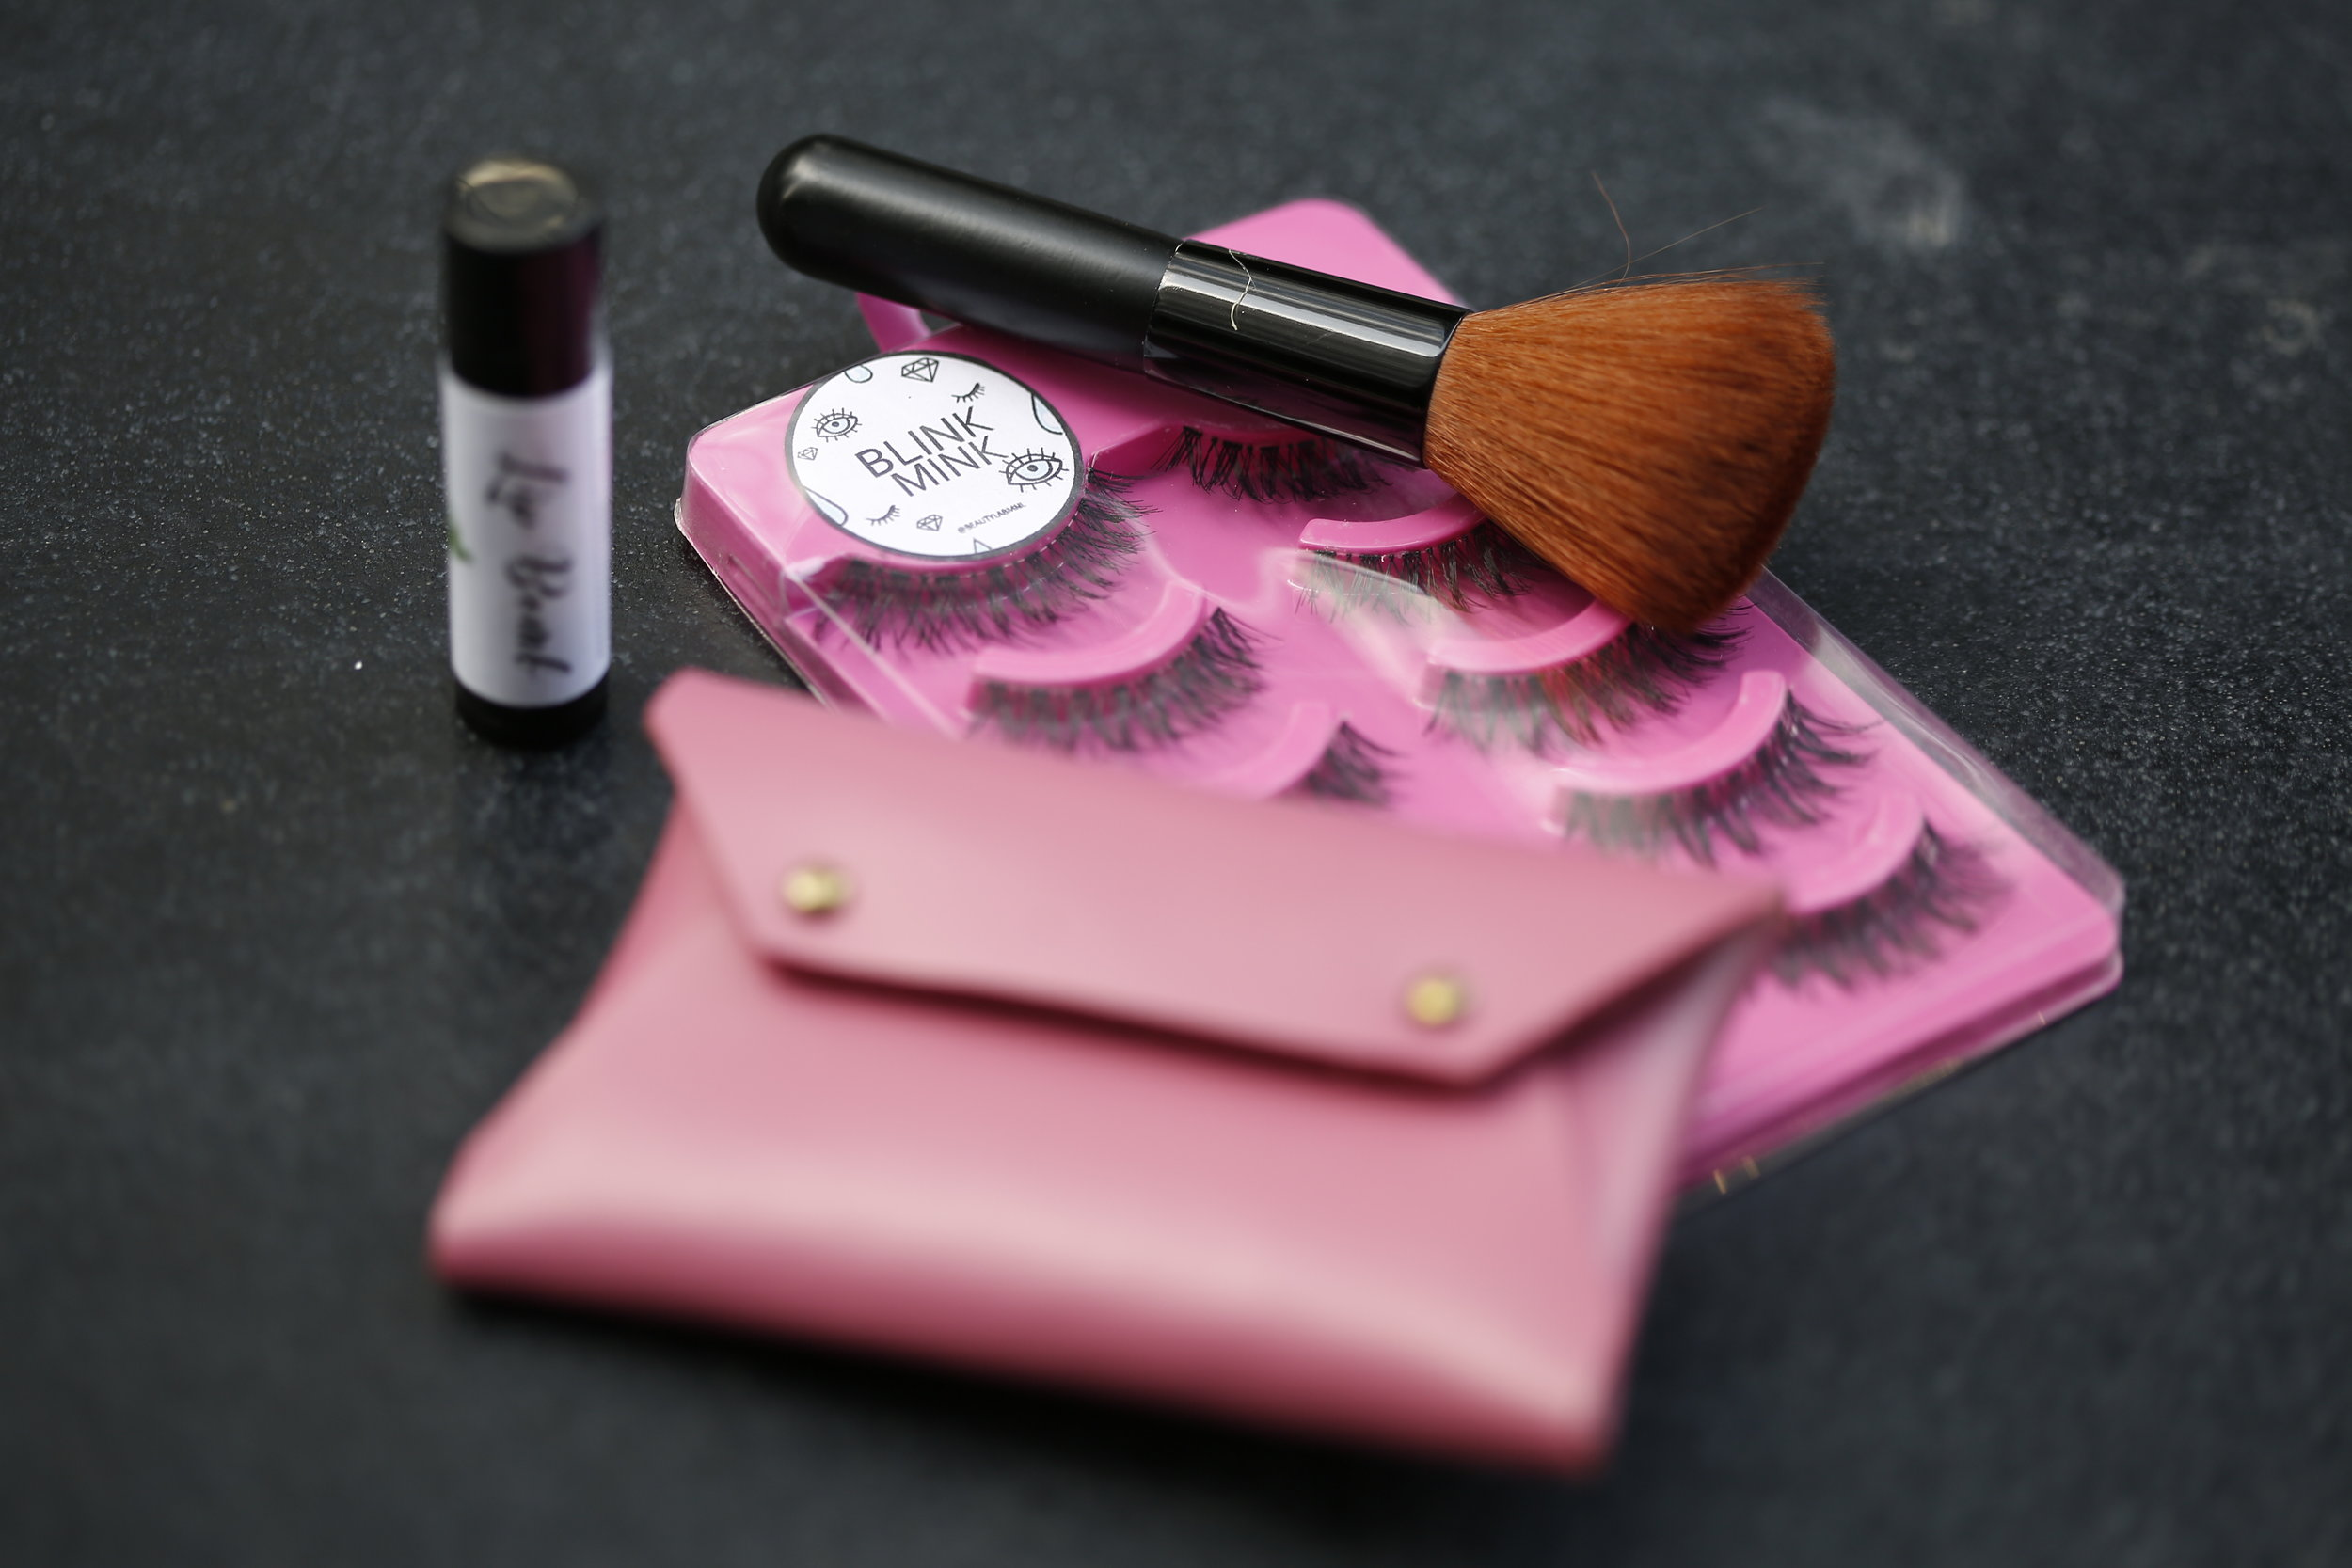 Beauty goodies from Beauty Lab Mnl, a kabuki brush from BYS Philippines, and a Ni-qua leather pouch.